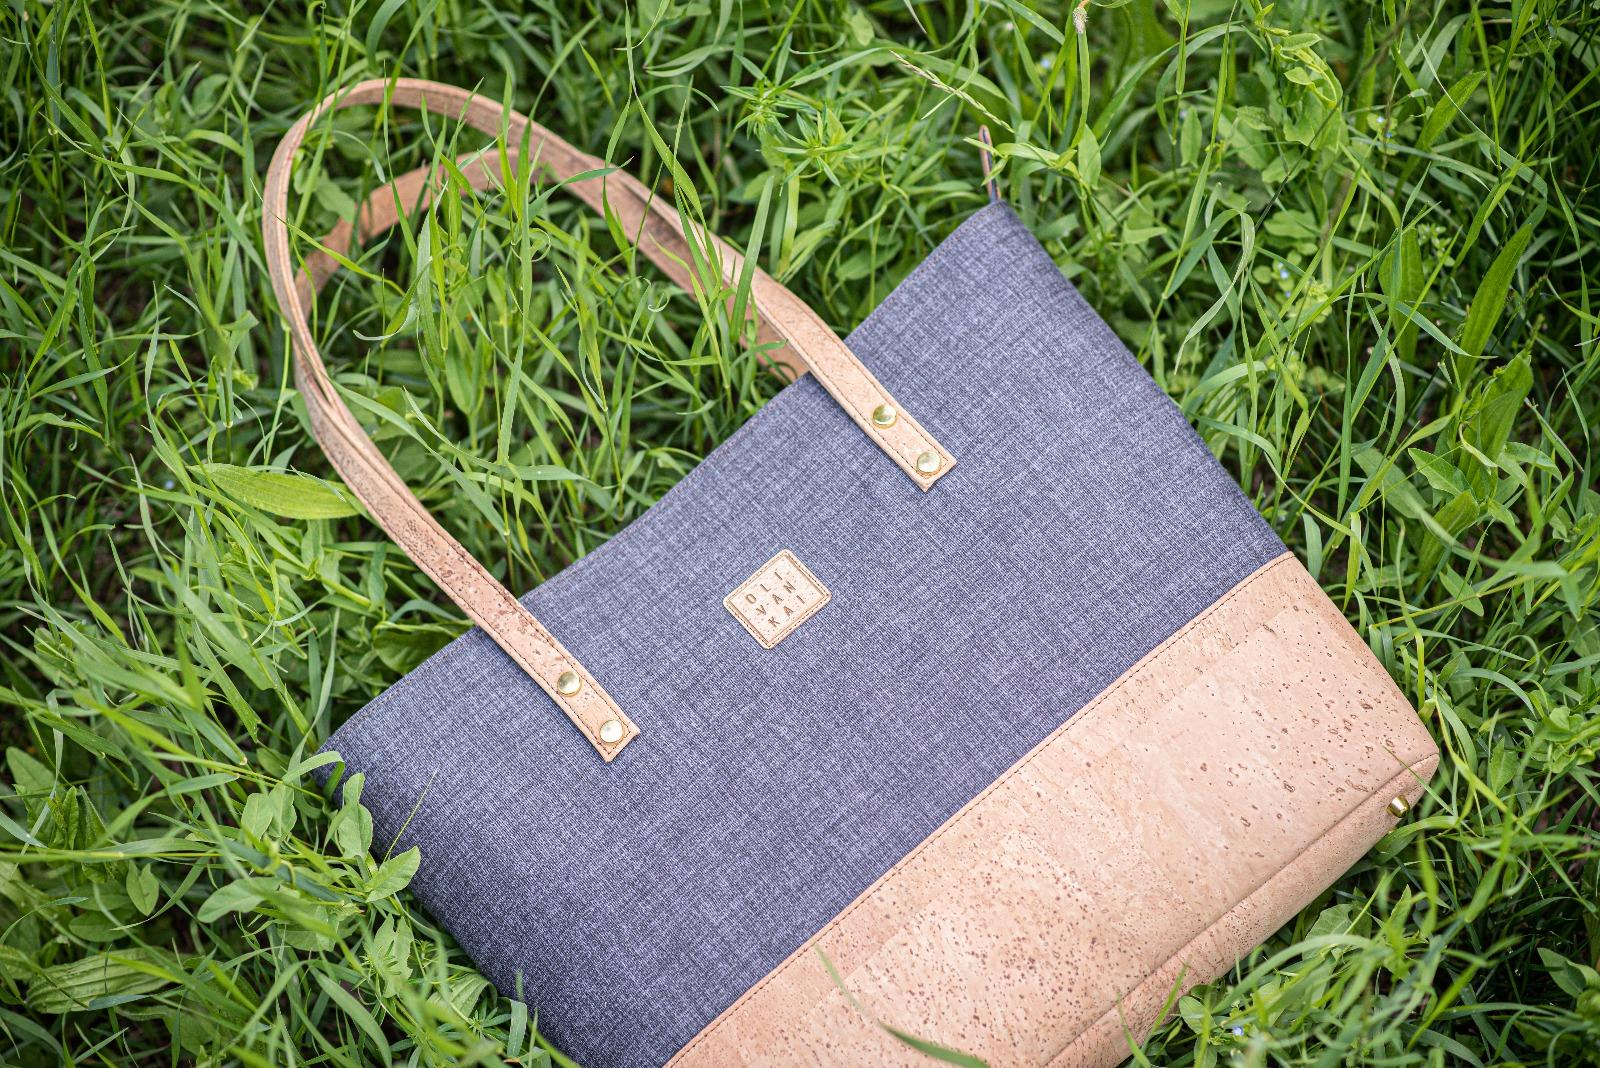 OLIVAN KAI eco-friendly bag